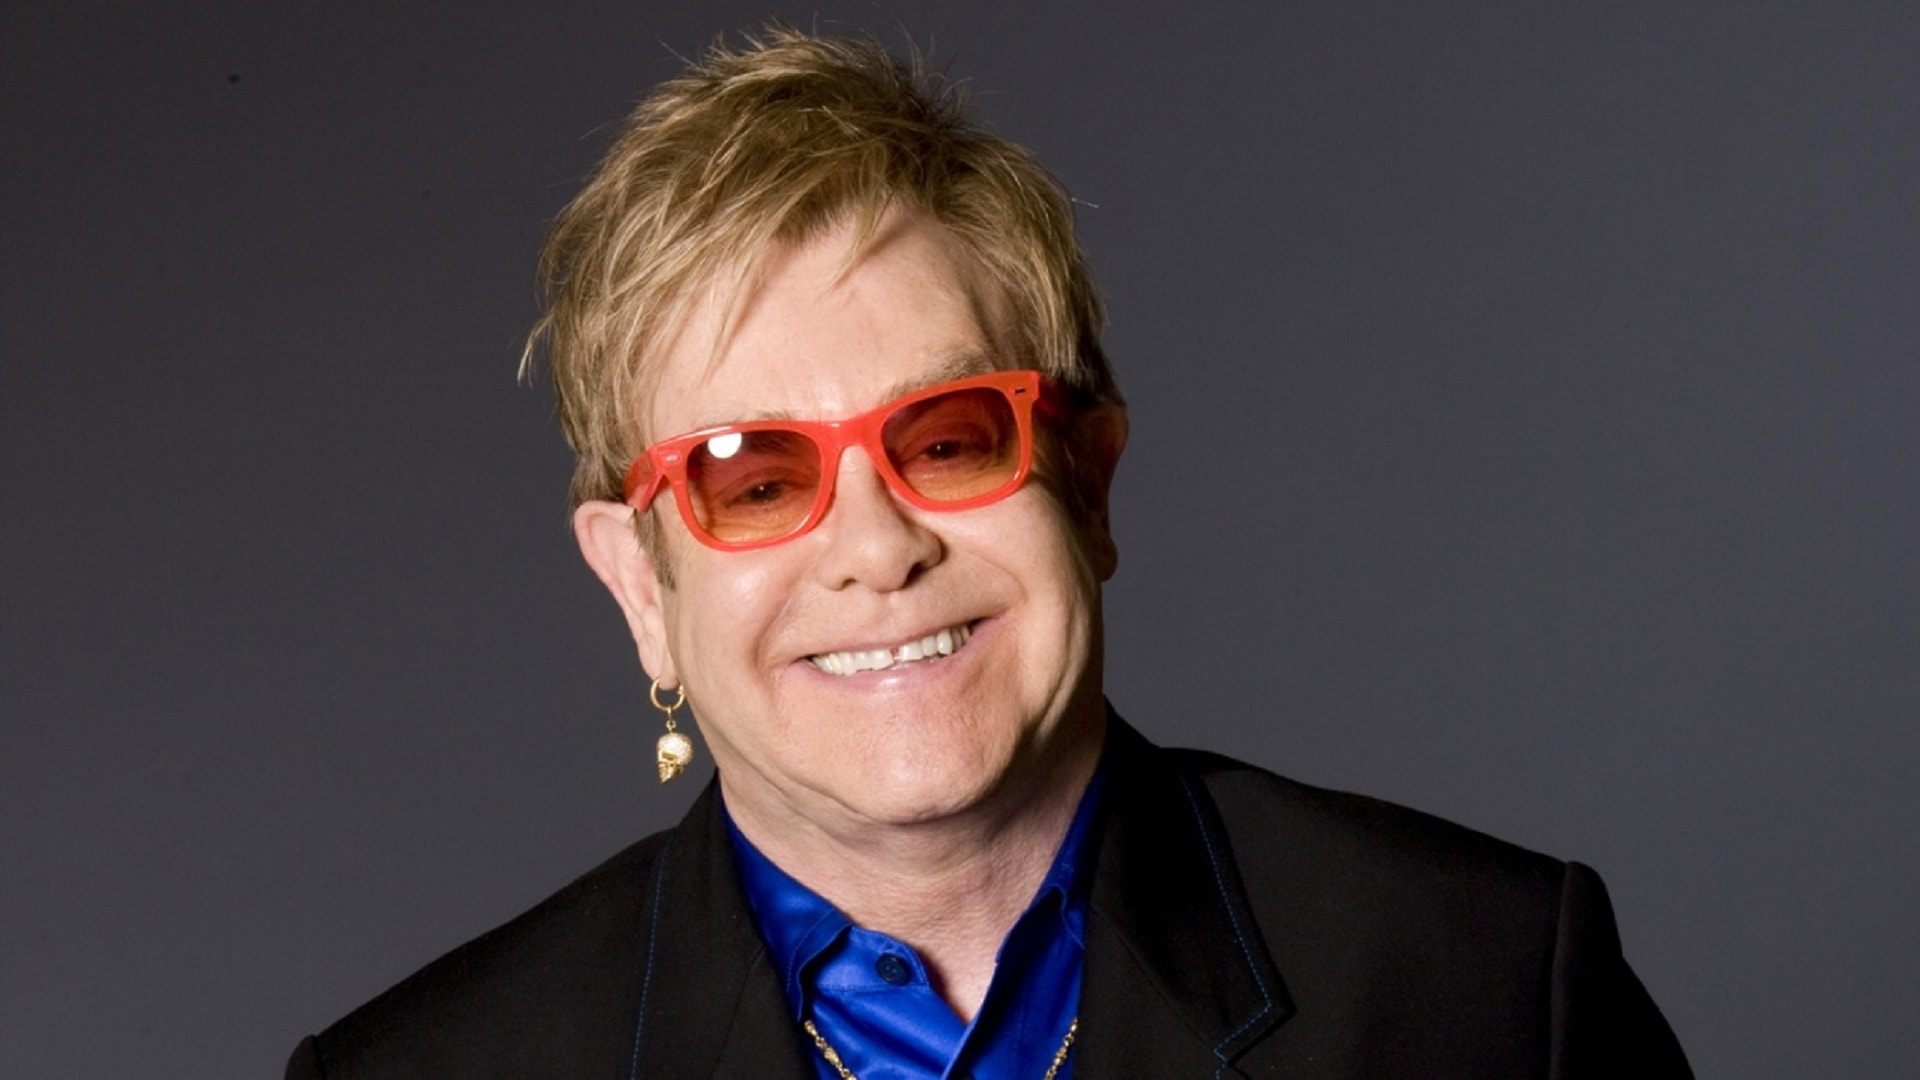 Elton John Widescreen for desktop